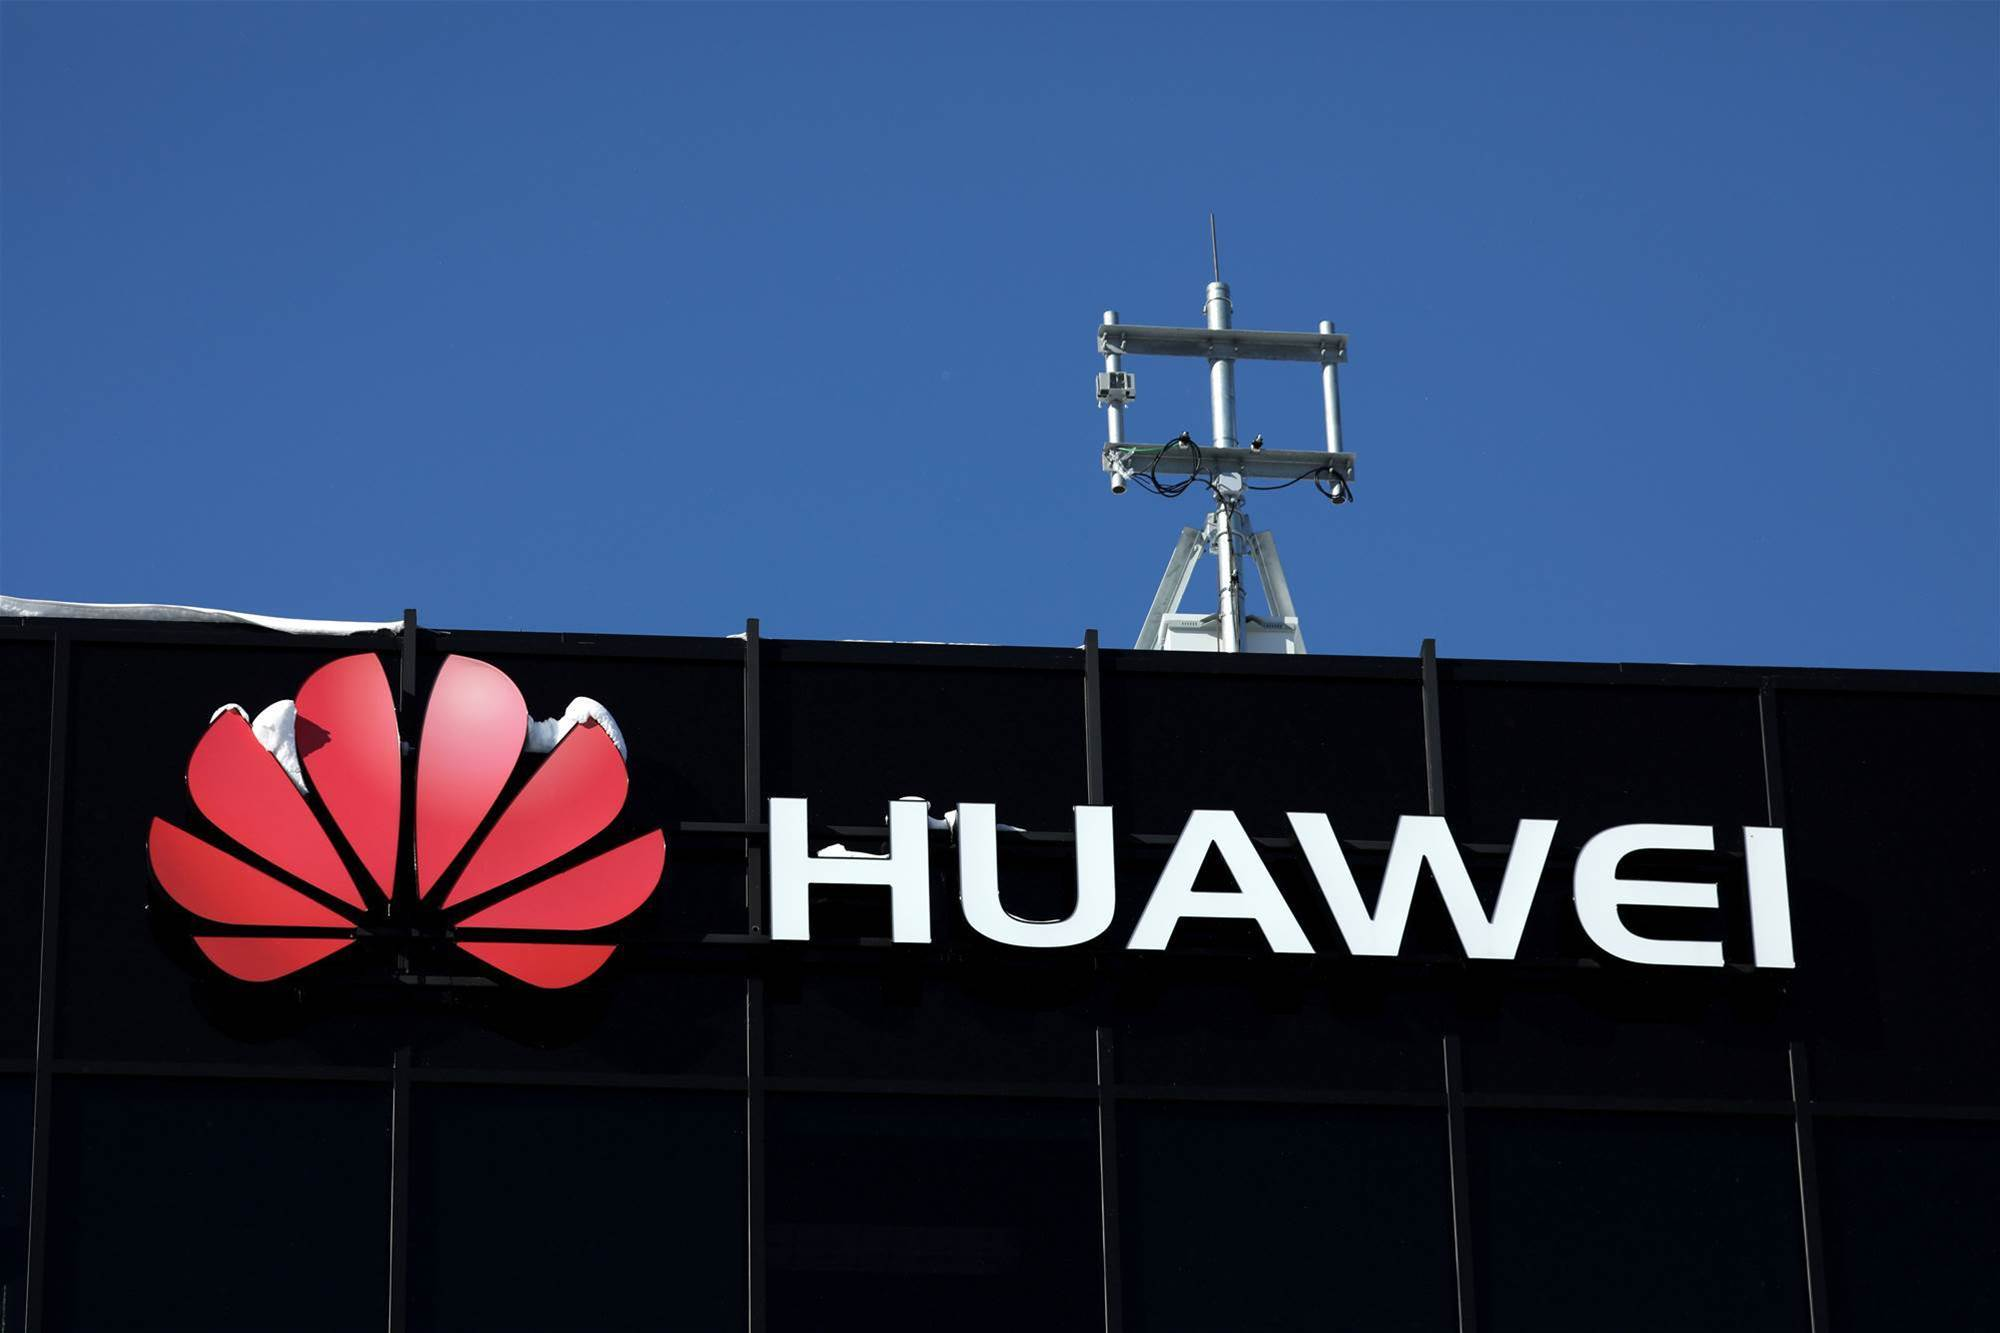 Huawei units plead not guilty to US trade secret theft